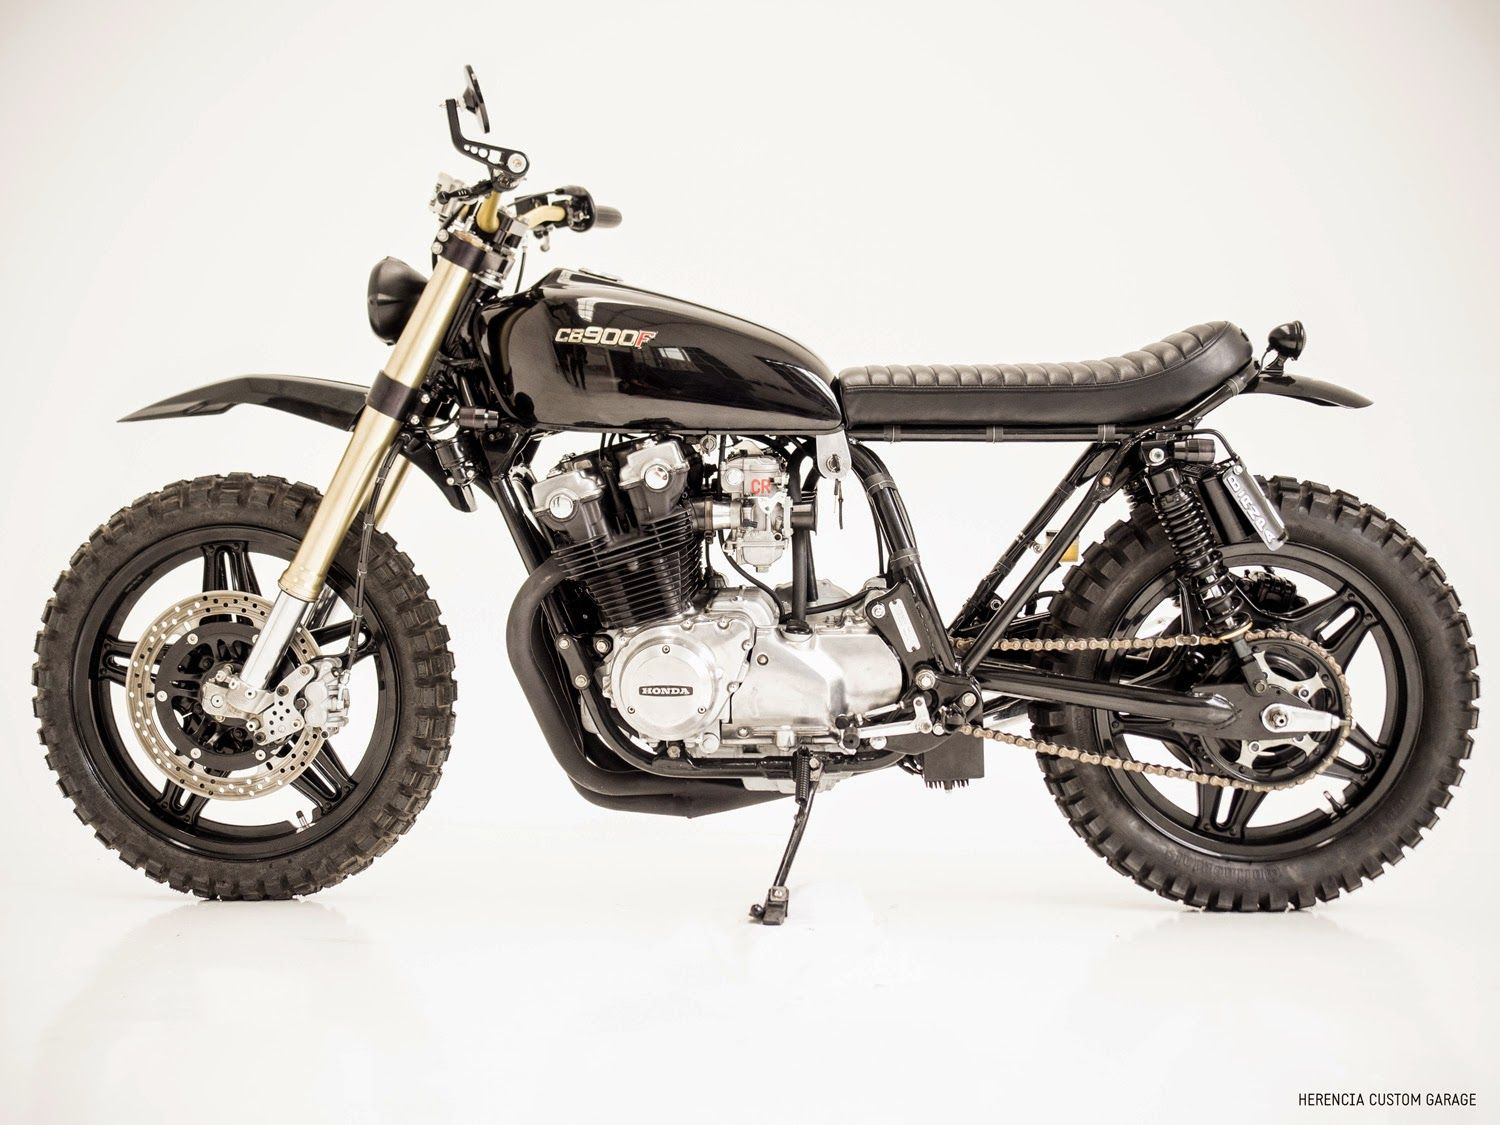 HERENCIA CUSTOM GARAGE: H.C.G. Project # 21 - CB 900B